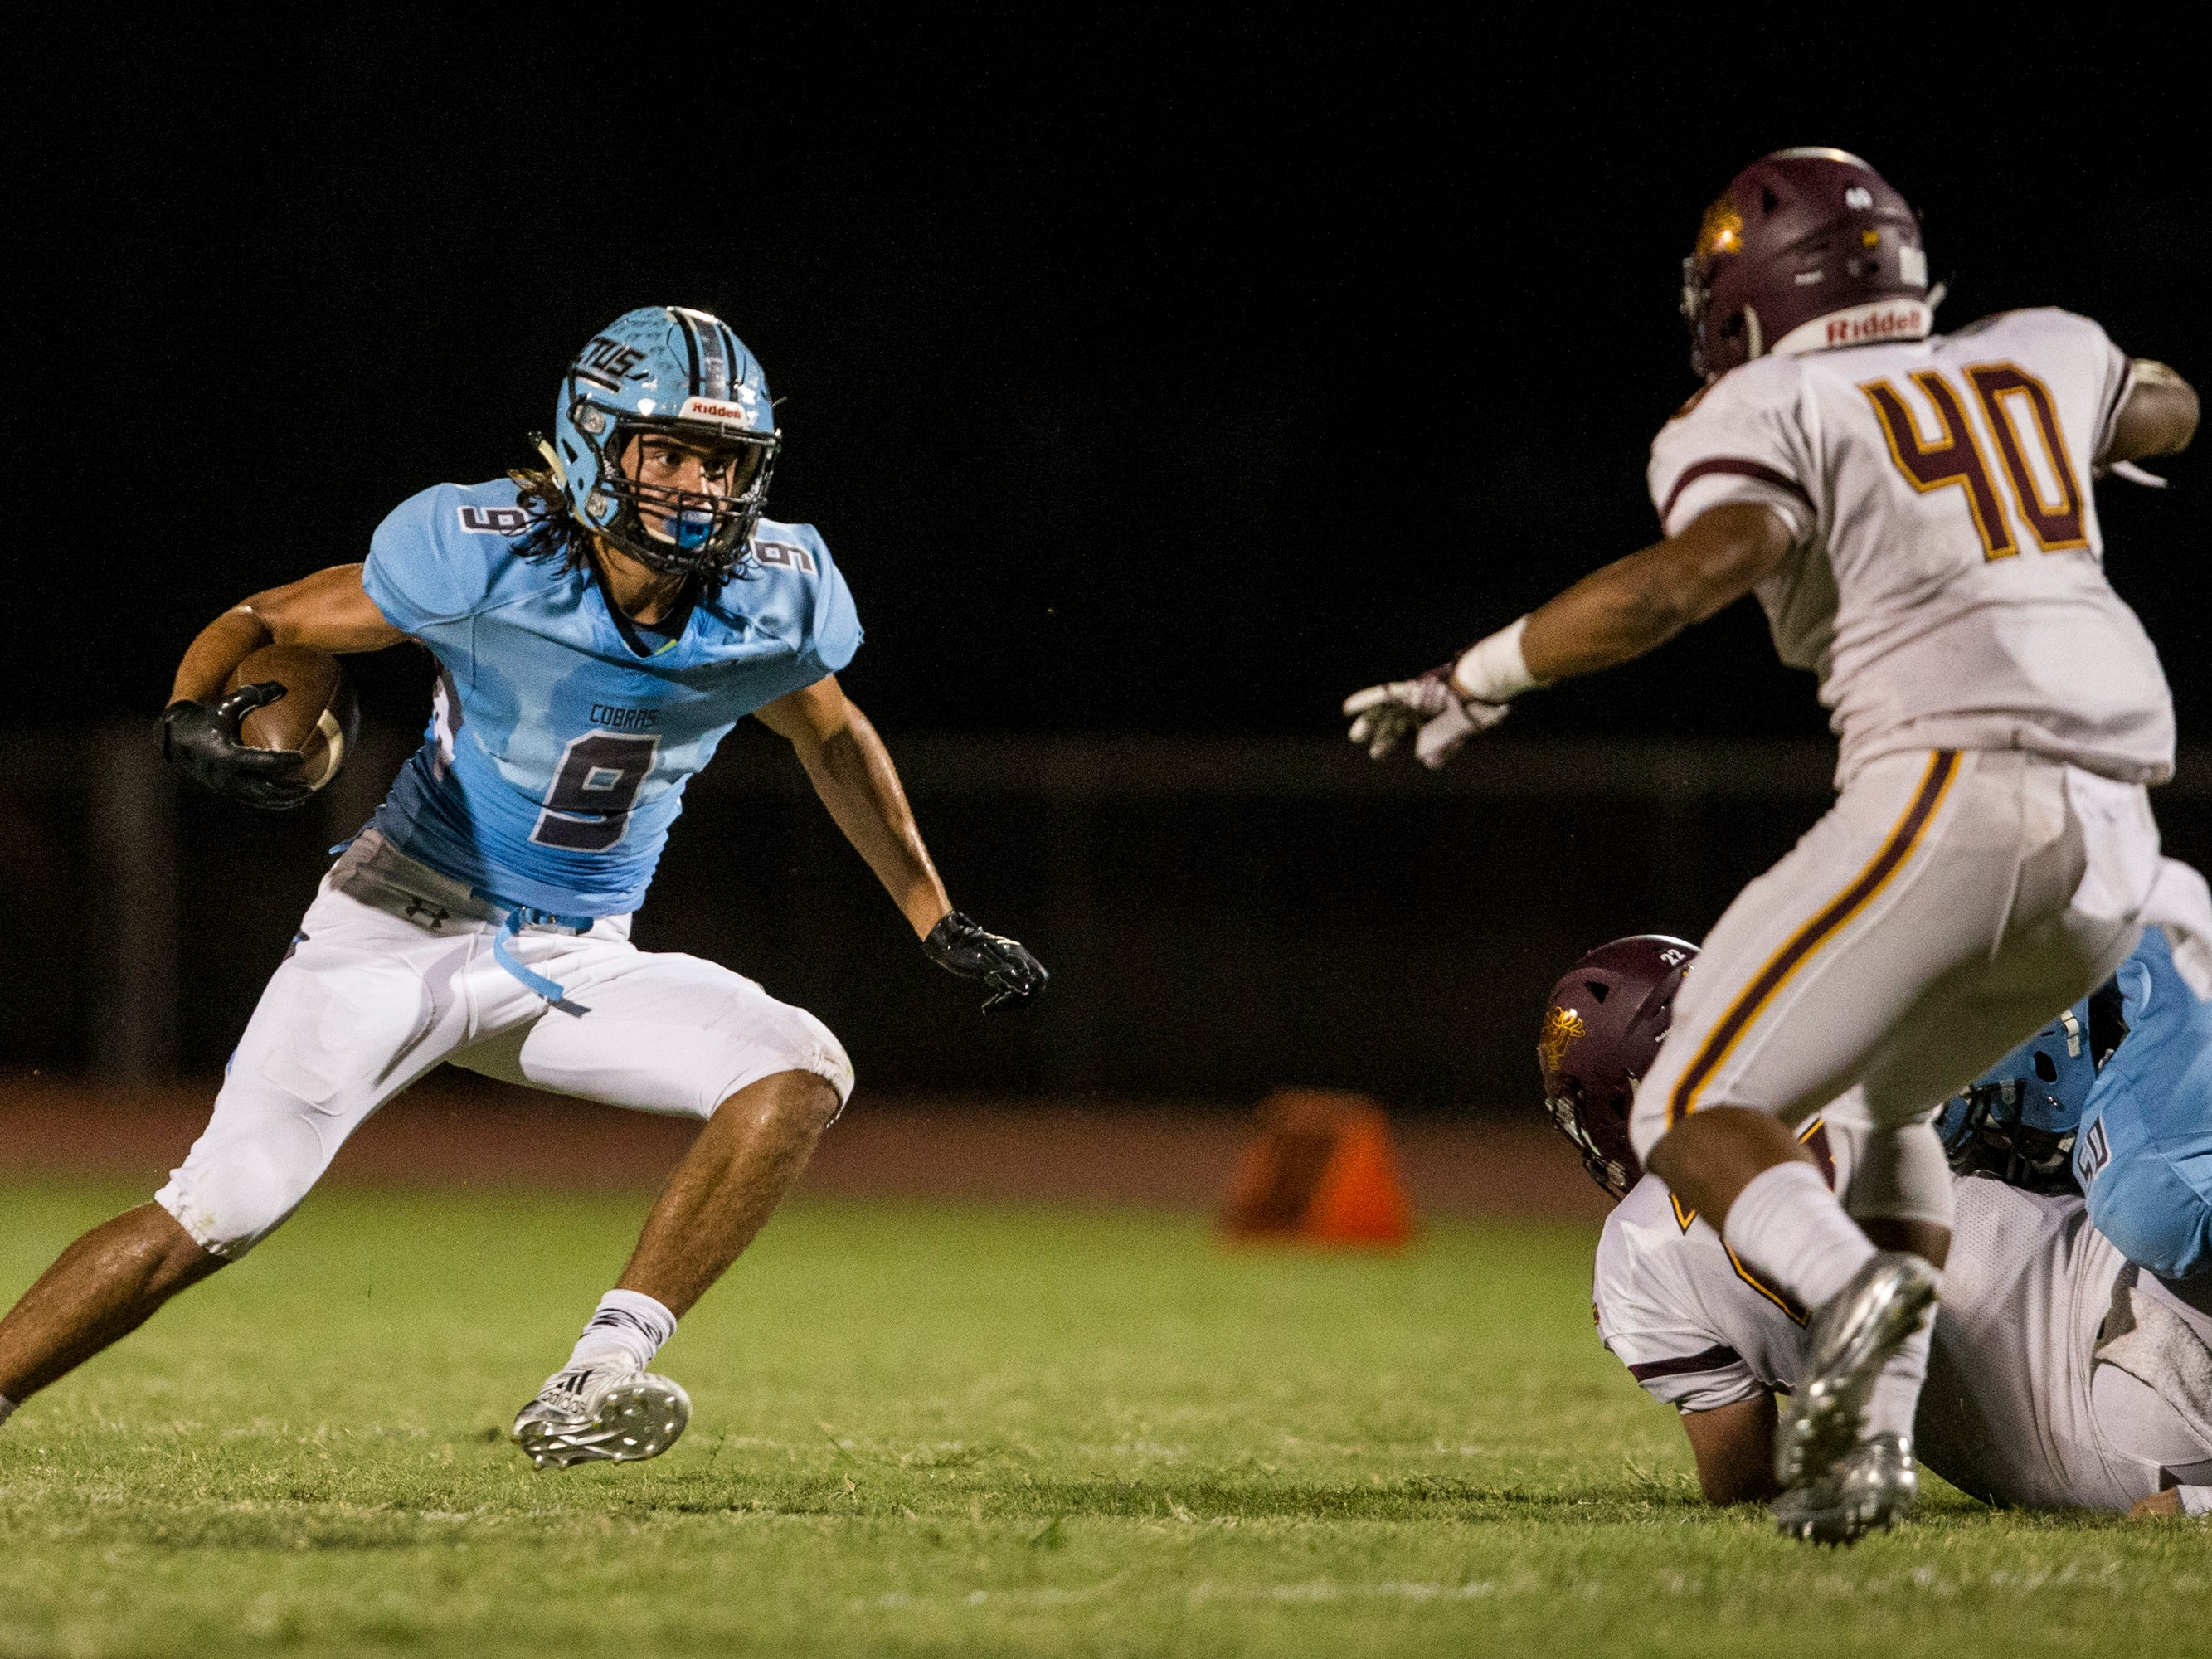 Cactus' Zaach Cullop rushes against Salpointe in the 1st quarter on Friday, Sept. 14, 2018, at Cactus High School in Glendale, Ariz.